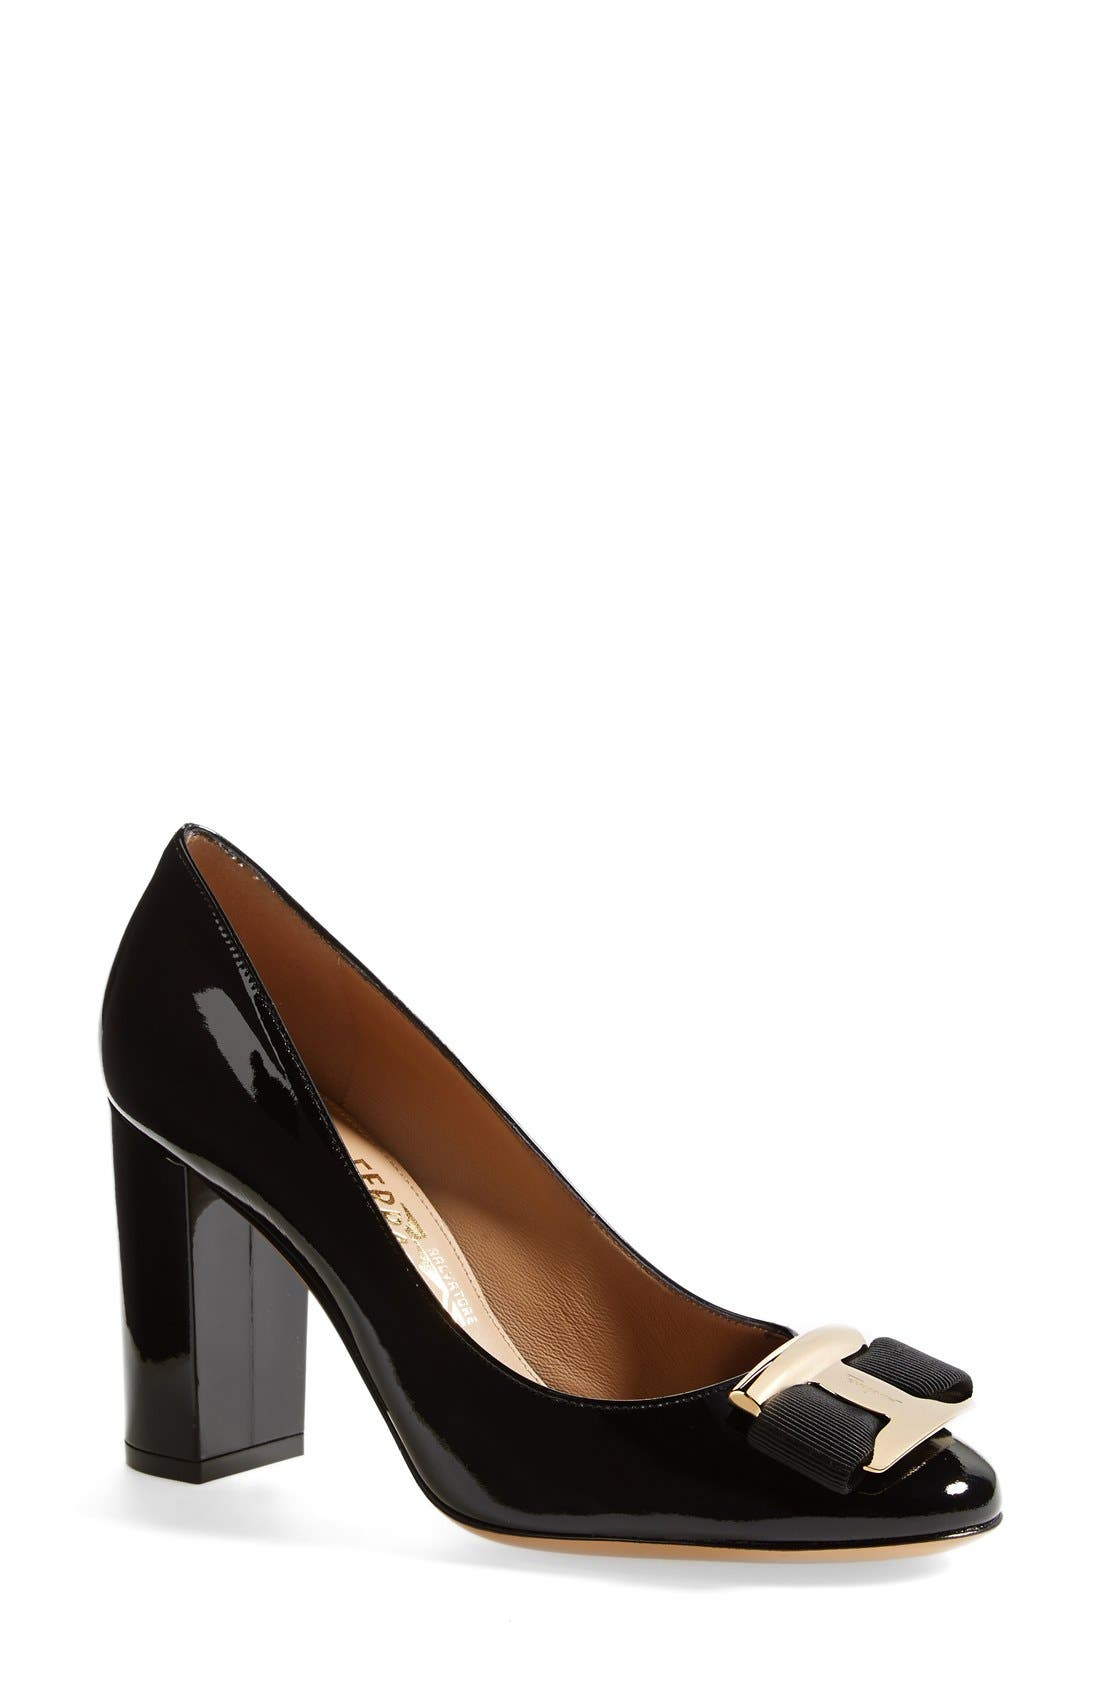 Alternate Image 1 Selected - Salvatore Ferragamo 'Ninna 85' Pump (Women)